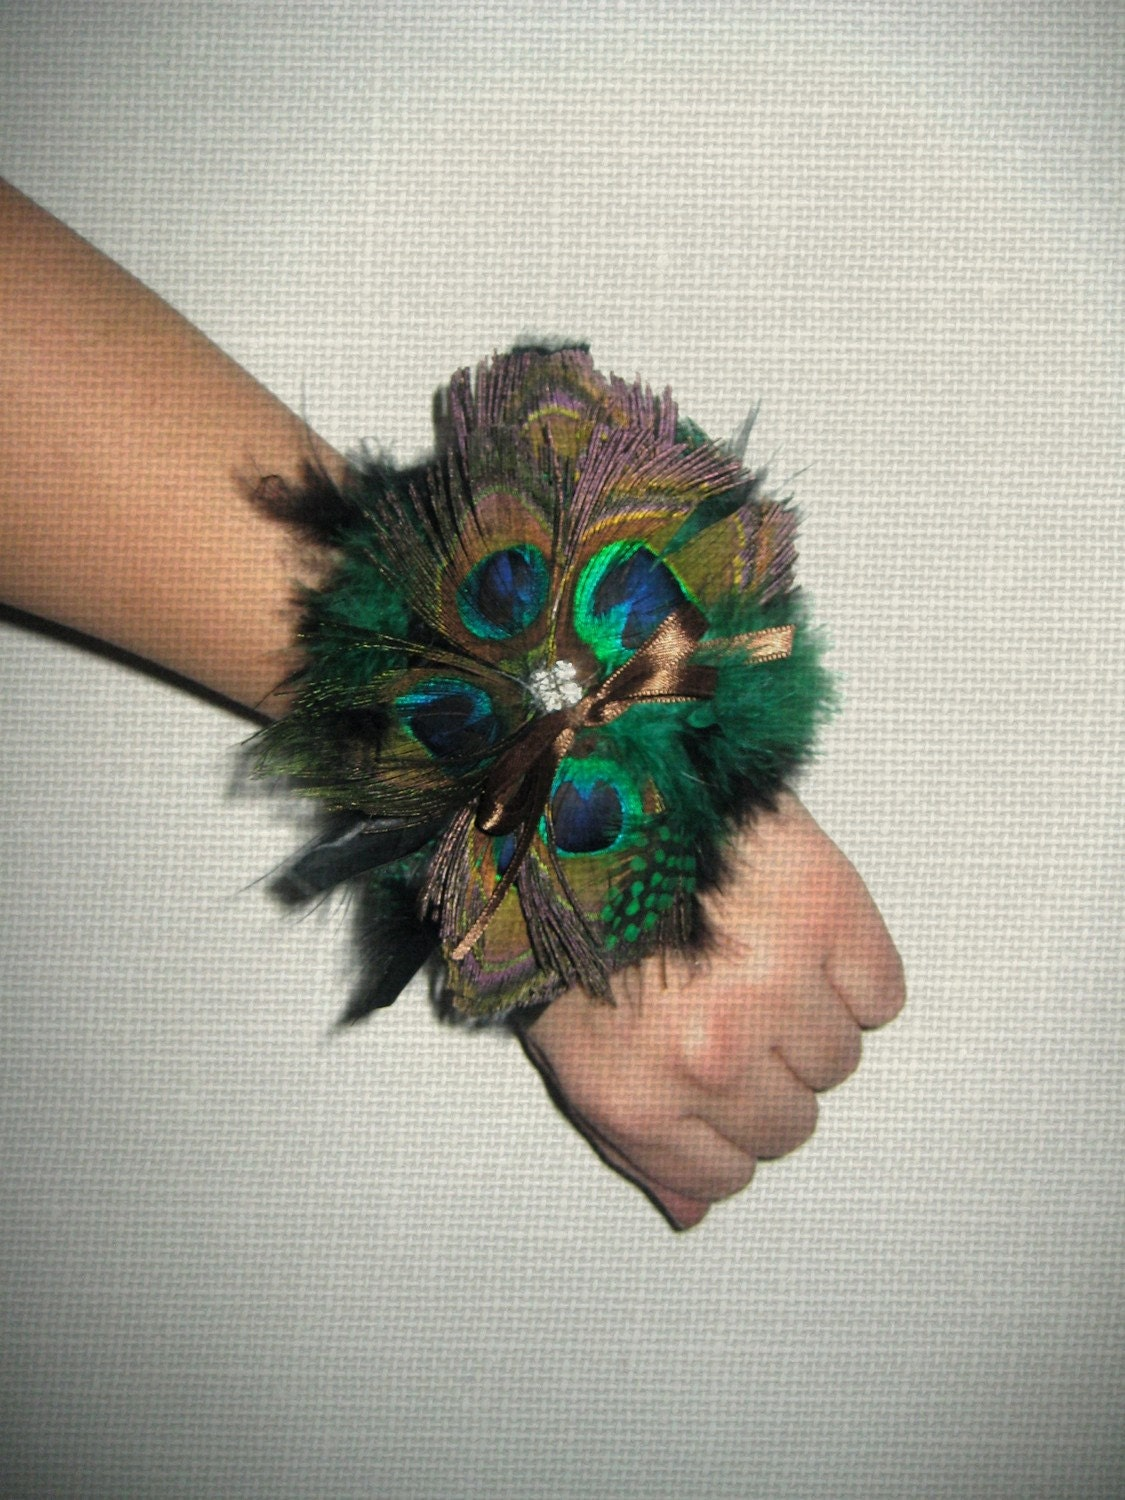 Peacock feather wrist corsage - Beautiful peacock feather ...